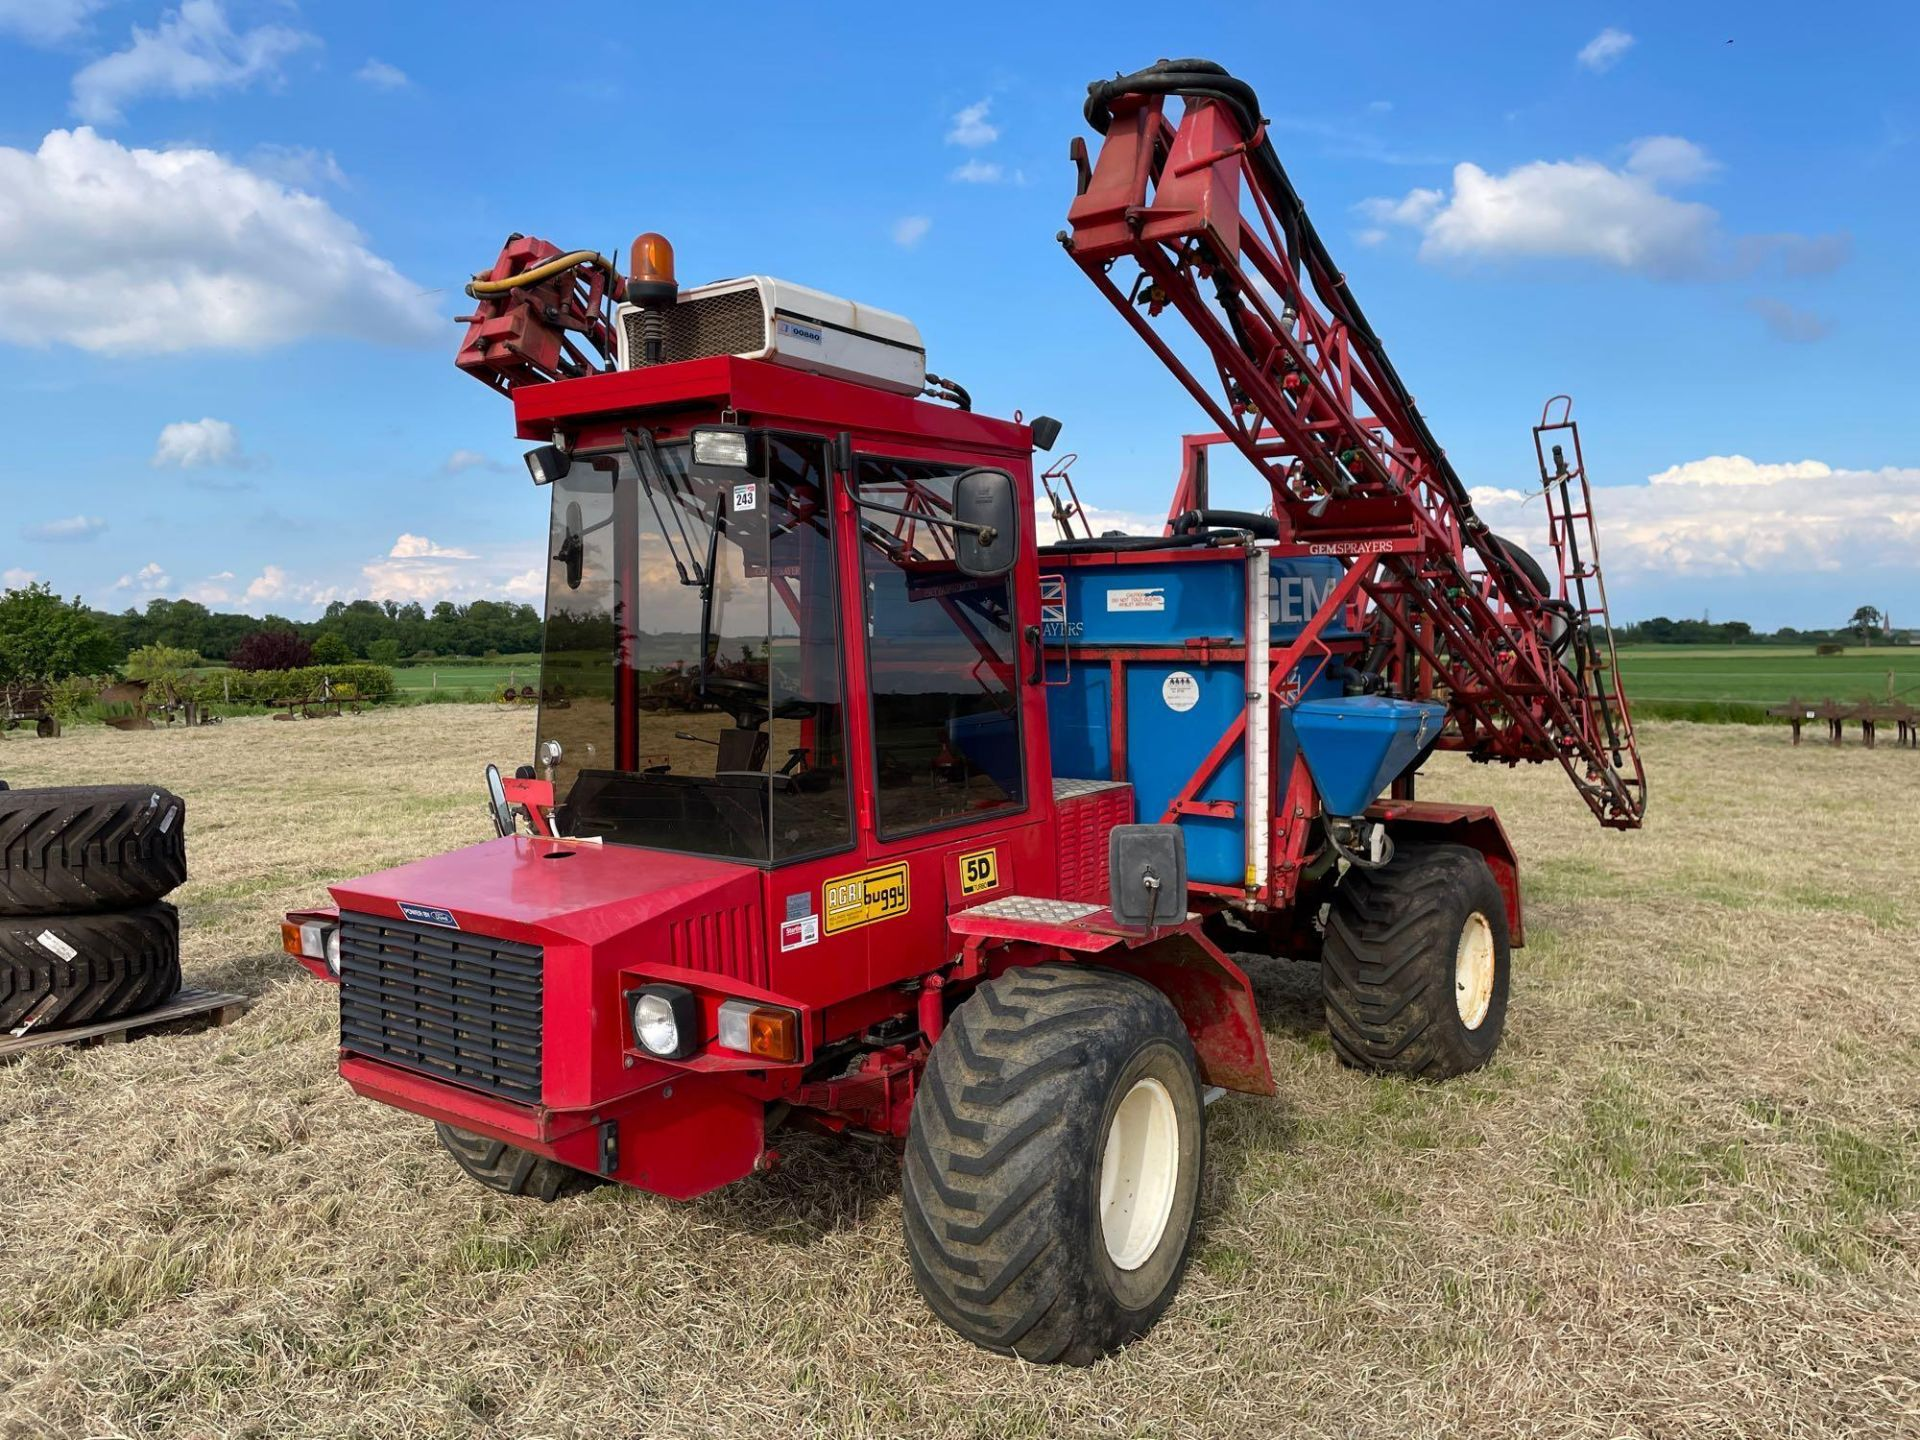 1995 Frazier Agri-Buggy SD with GEM 24m self propelled sprayer, 1500l tank on 38x20.00-16 wheels and